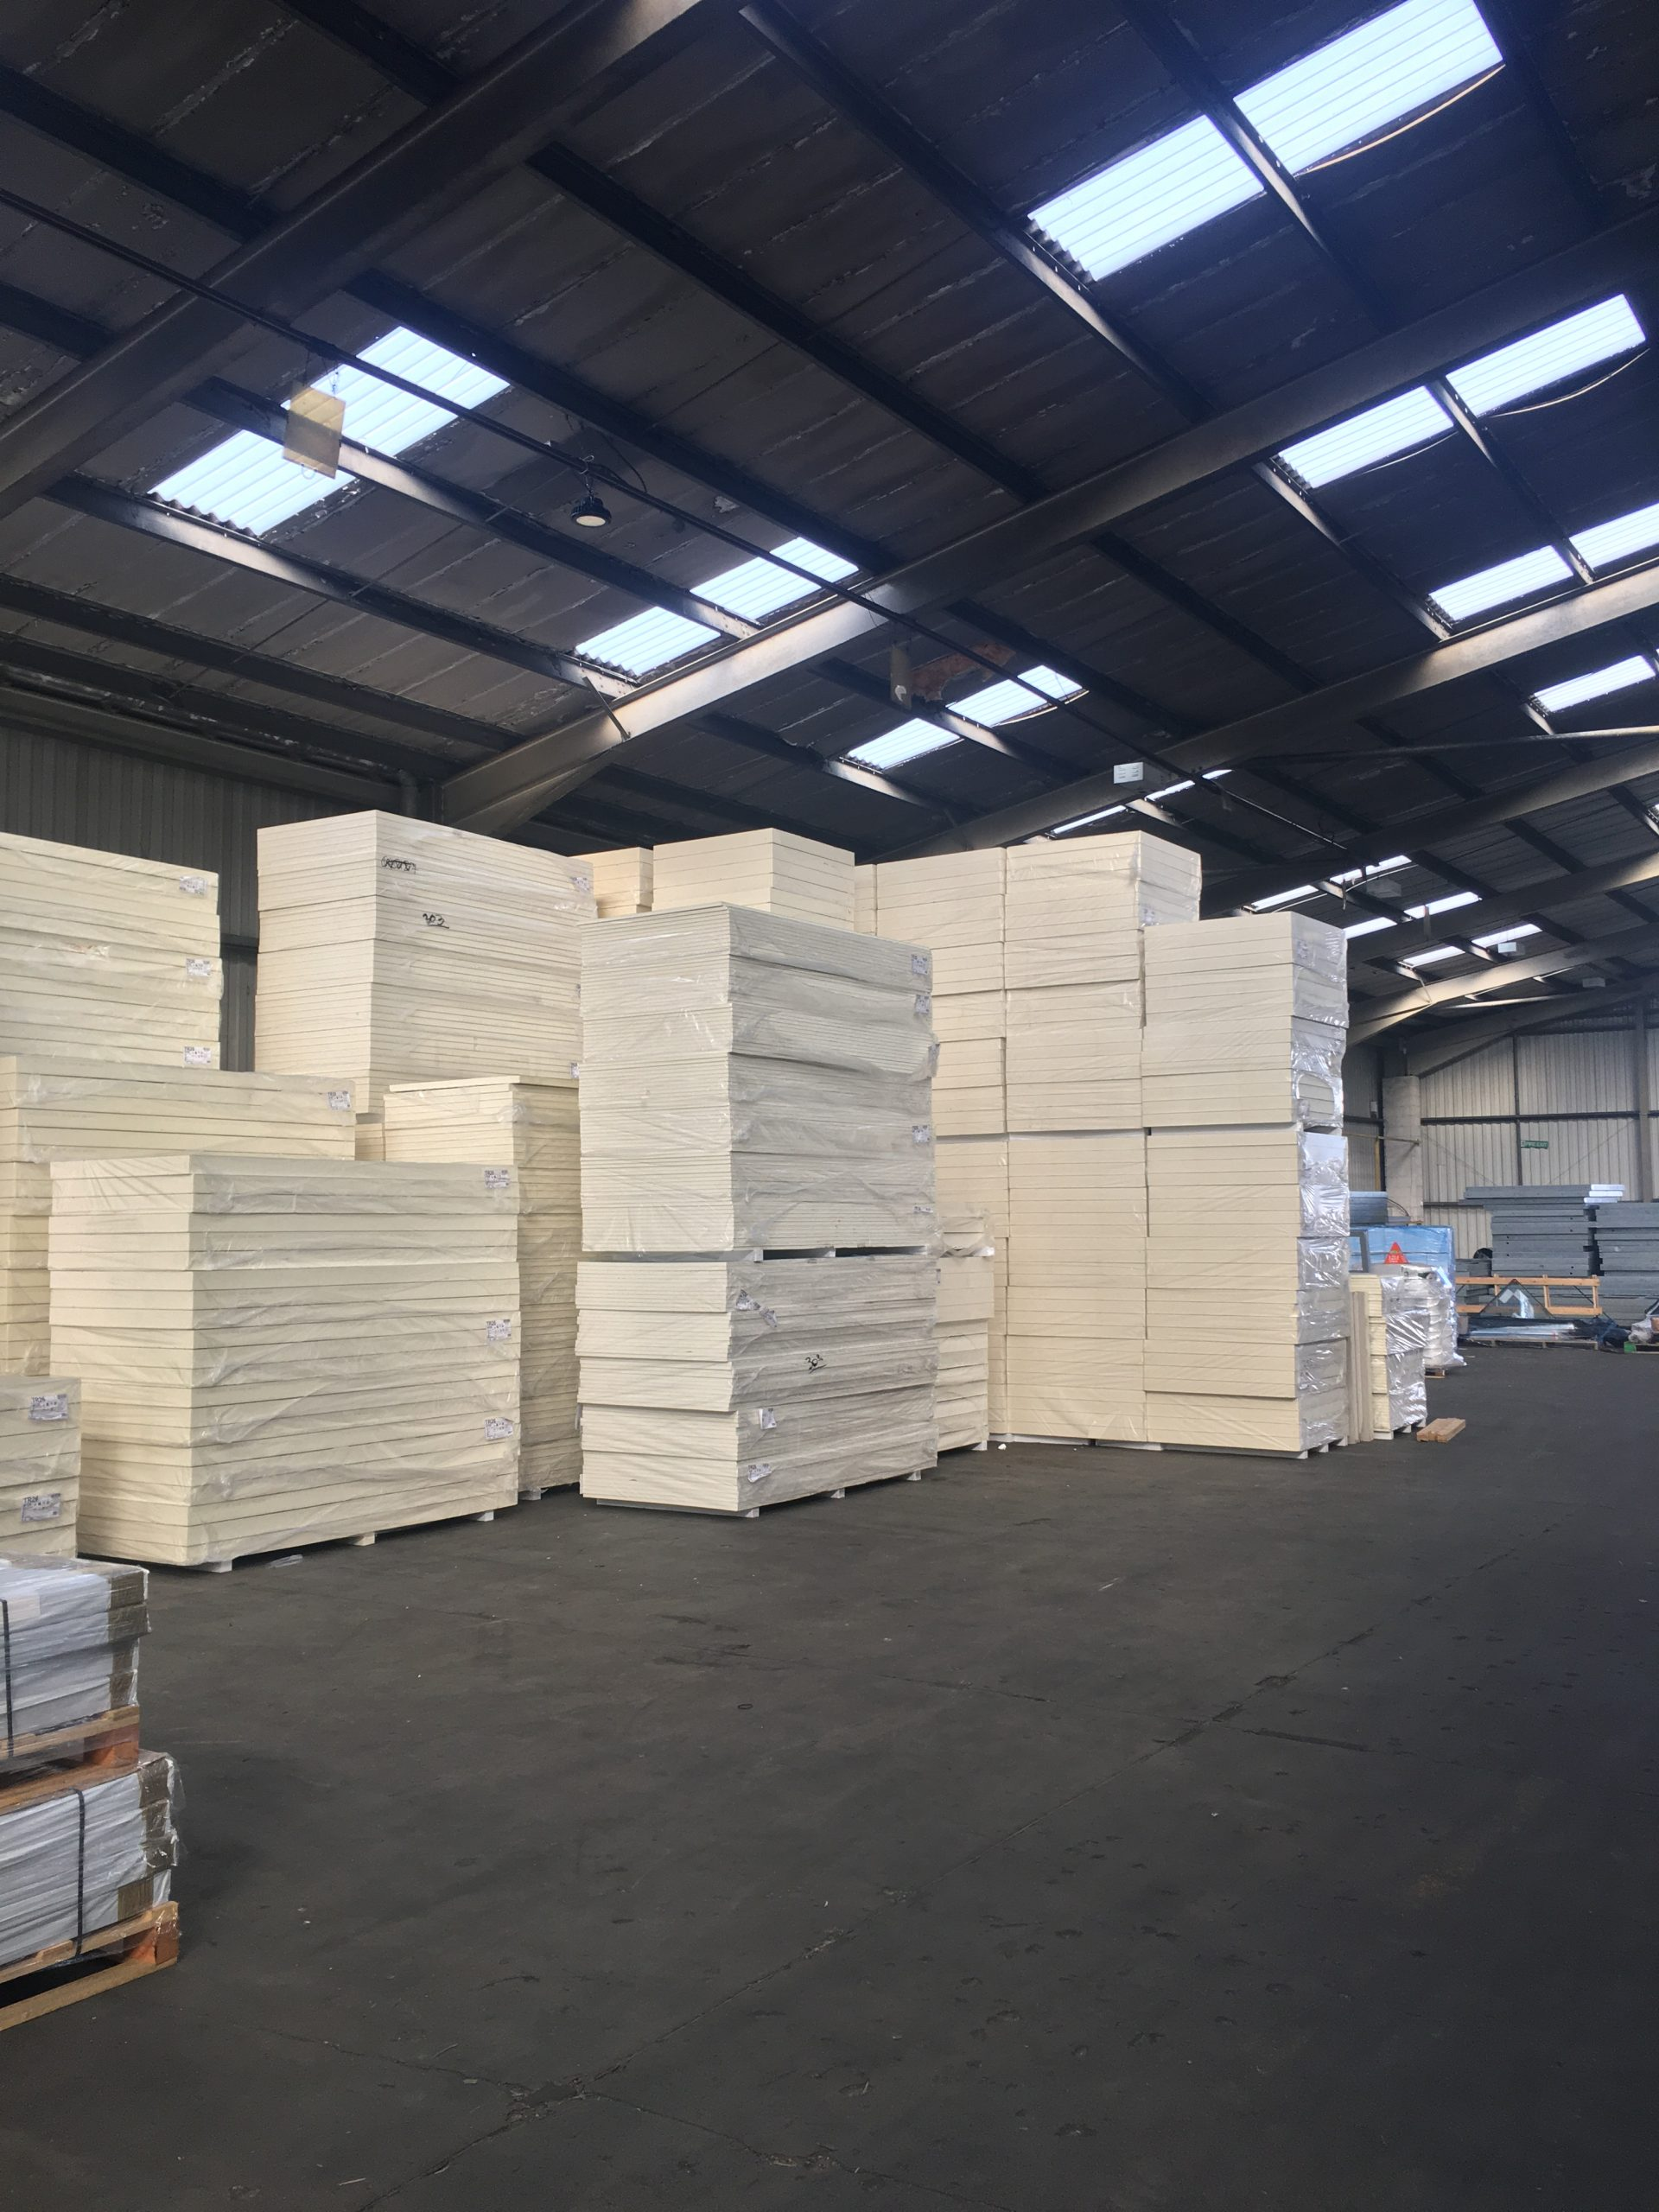 Roofing Insulation at Permaroof UK